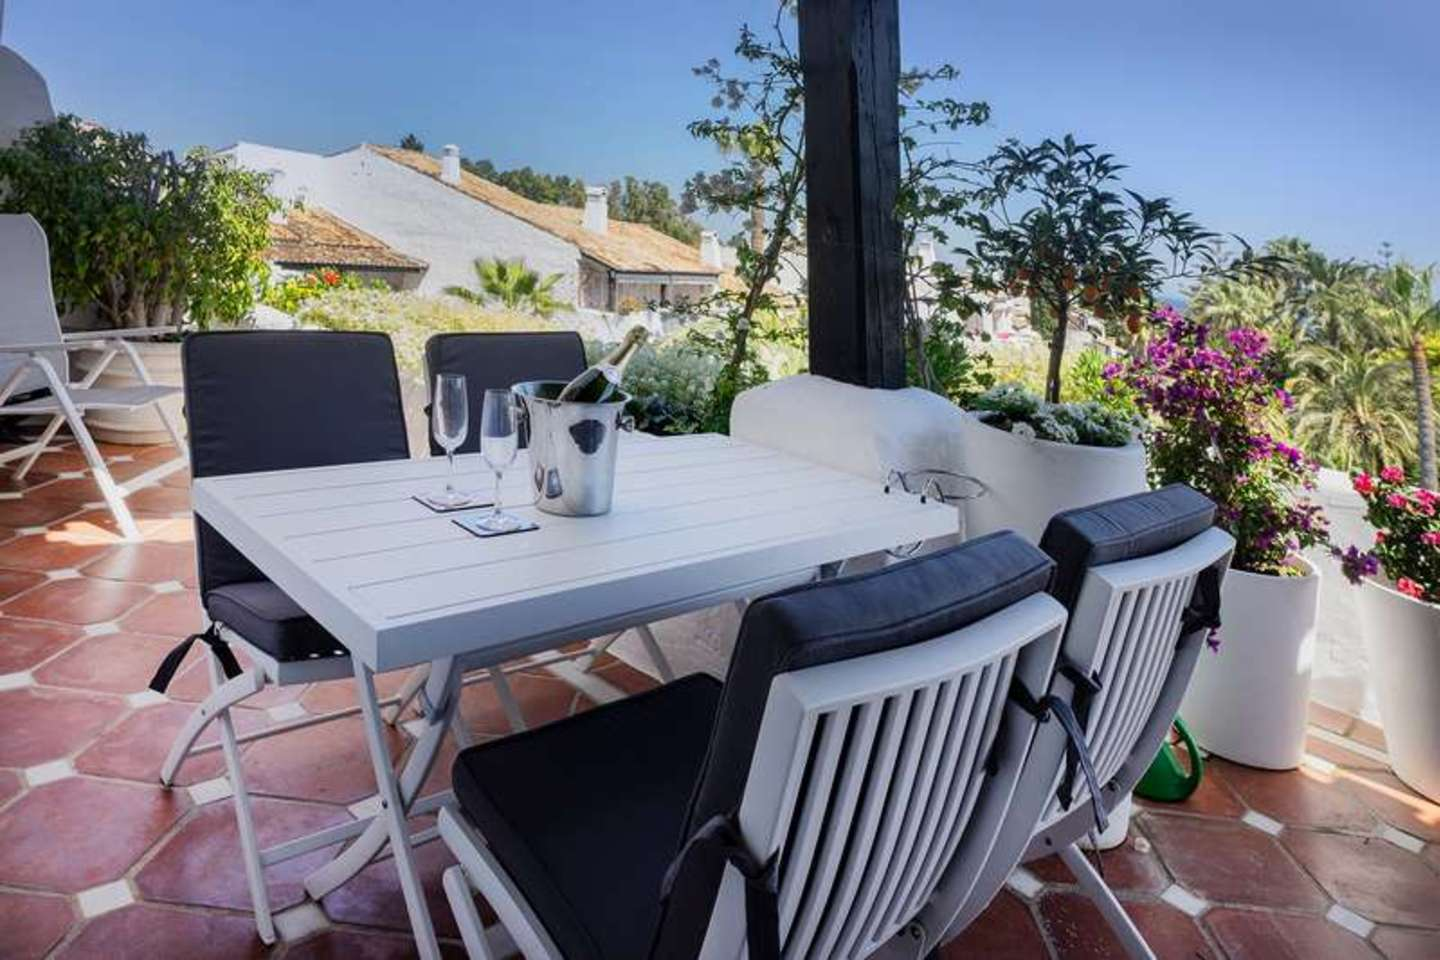 Delightful 2-bedroom penthouse in Puente Romano for rent.